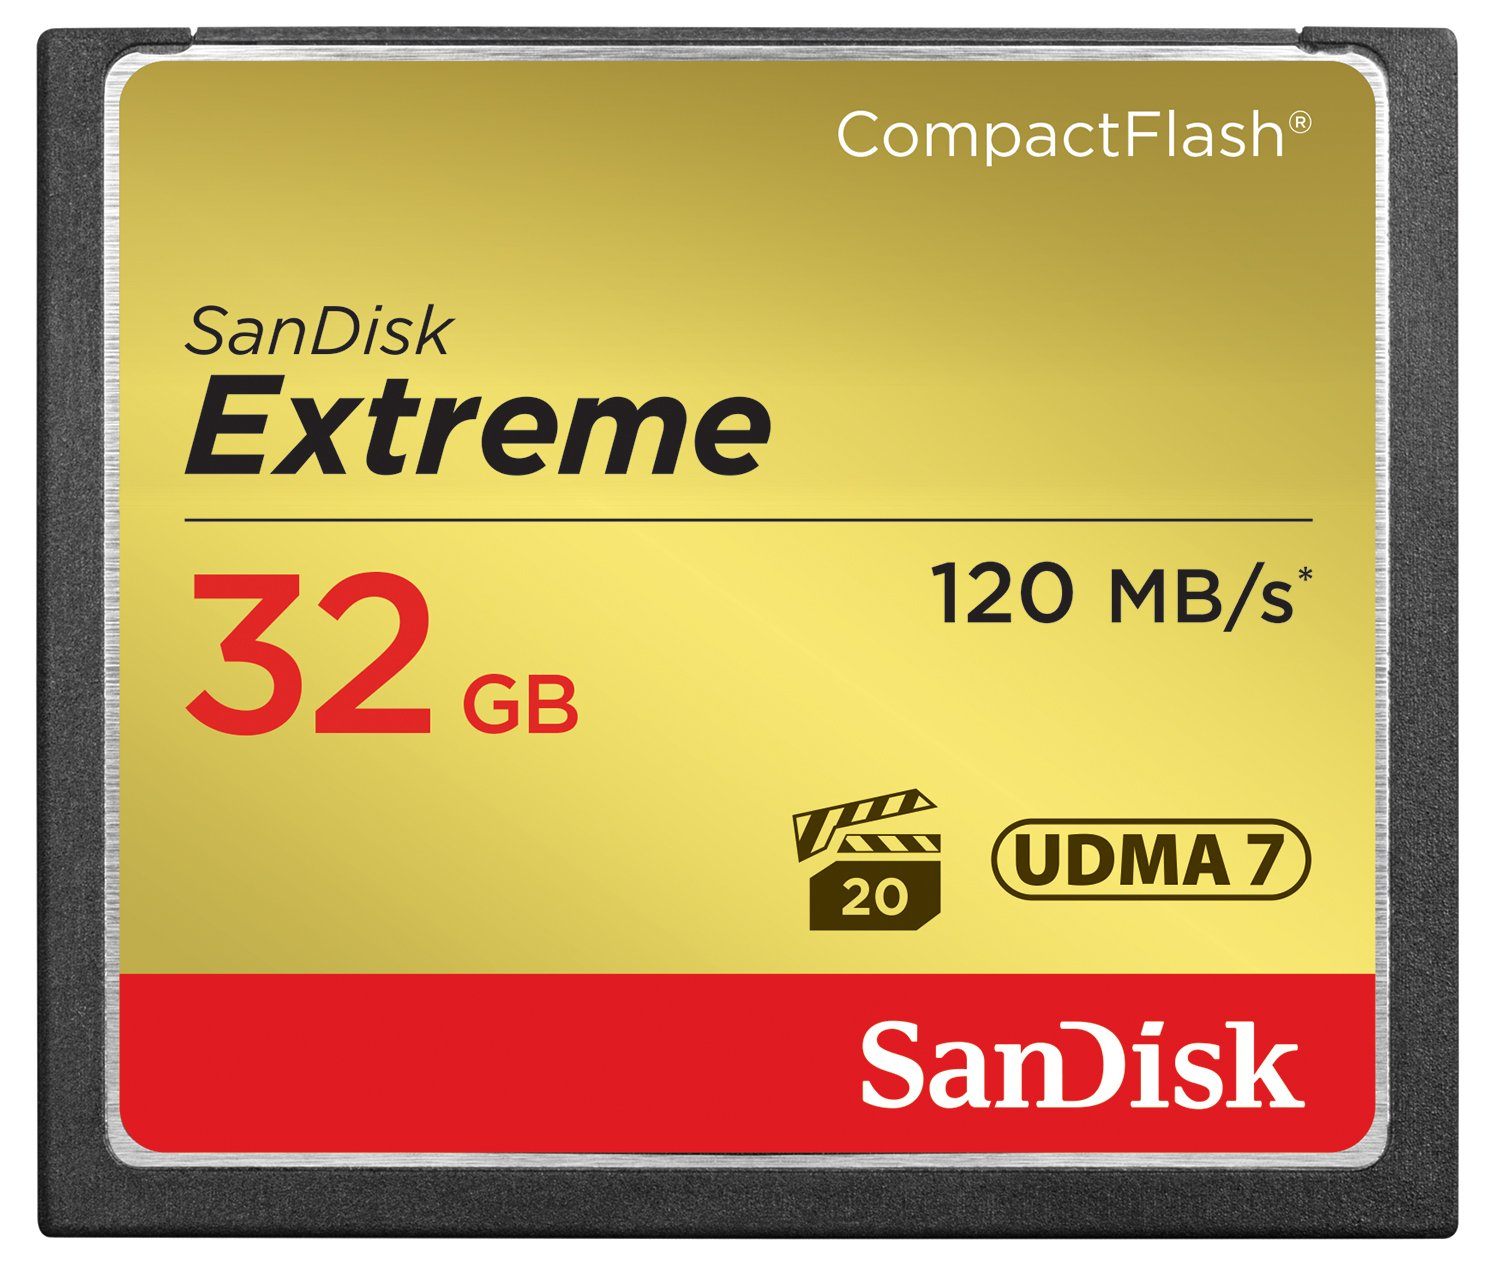 SanDisk Extreme 32GB Compact Flash Memory Card UDMA 7 Speed Up To 120MB/s- SDCFXS-032G-X46 by SanDisk